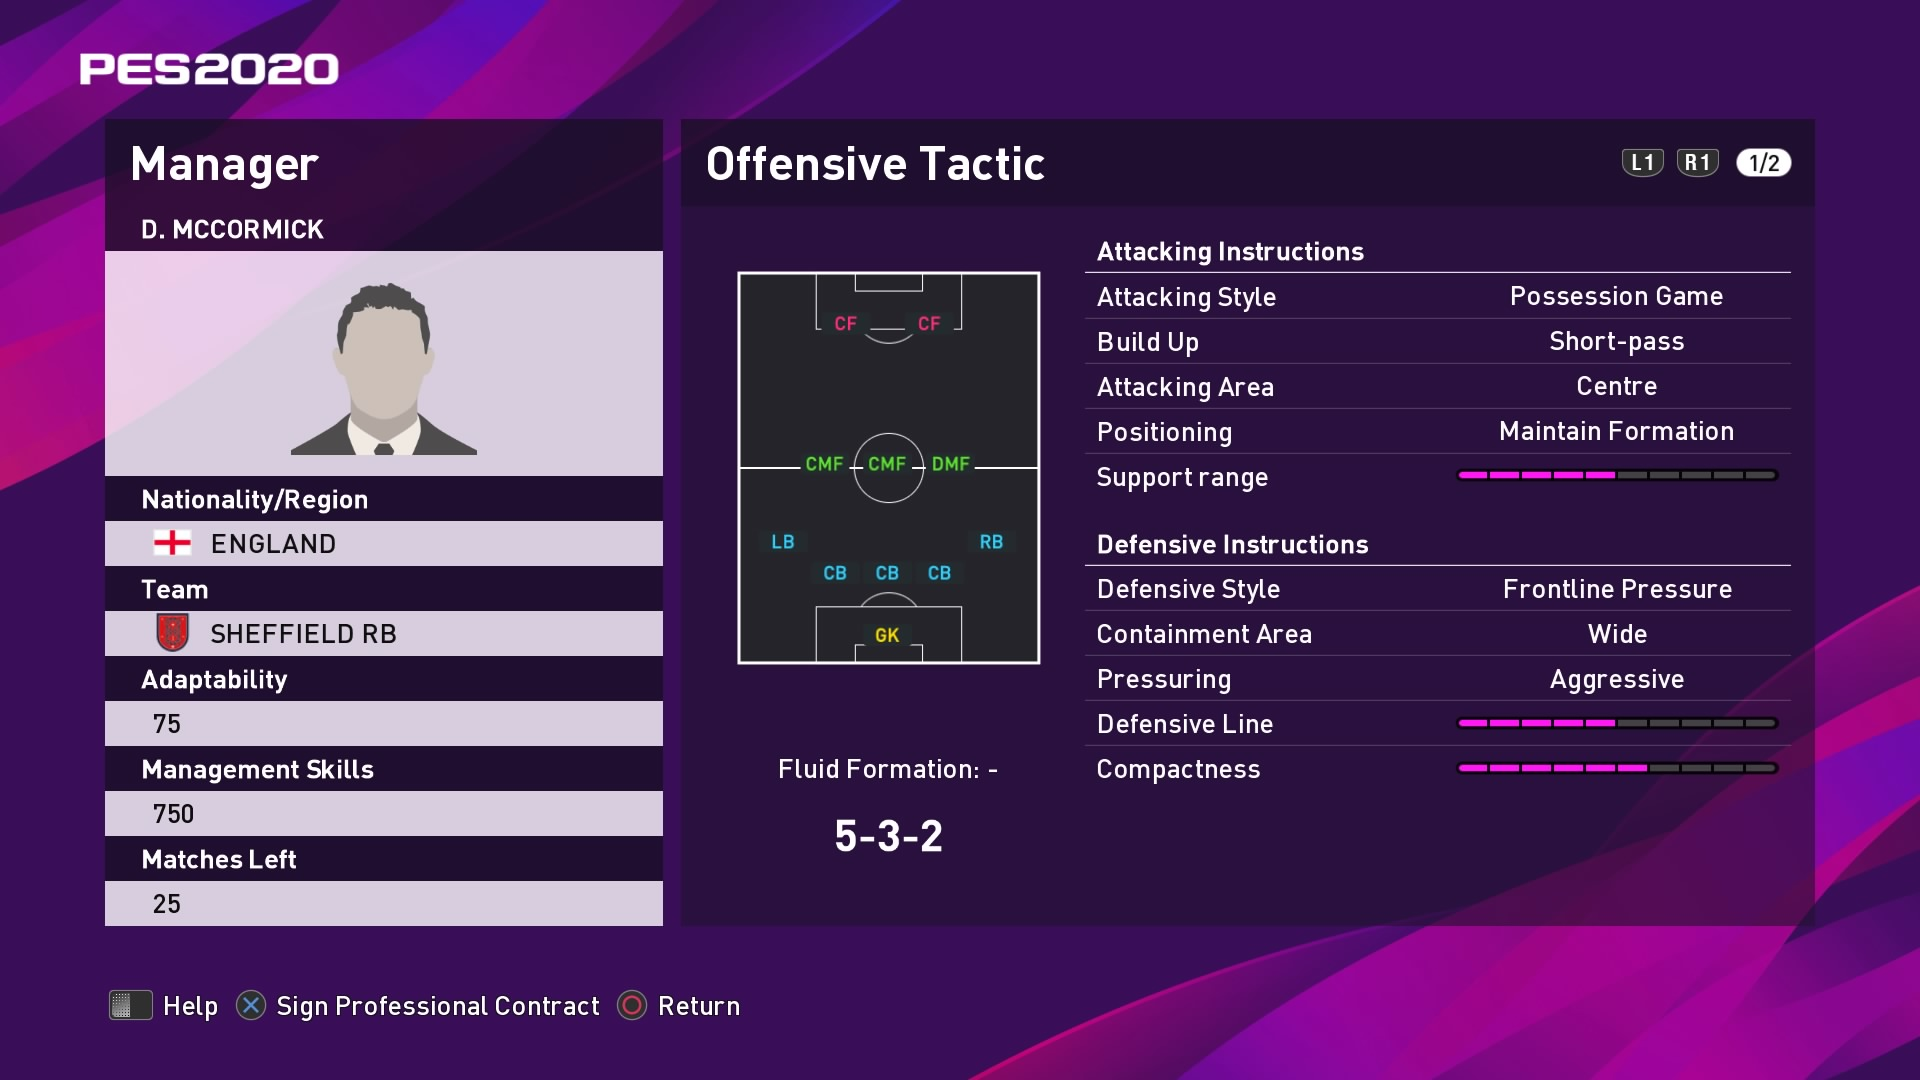 D. McCormick (Chris Wilder) Offensive Tactic in PES 2020 myClub